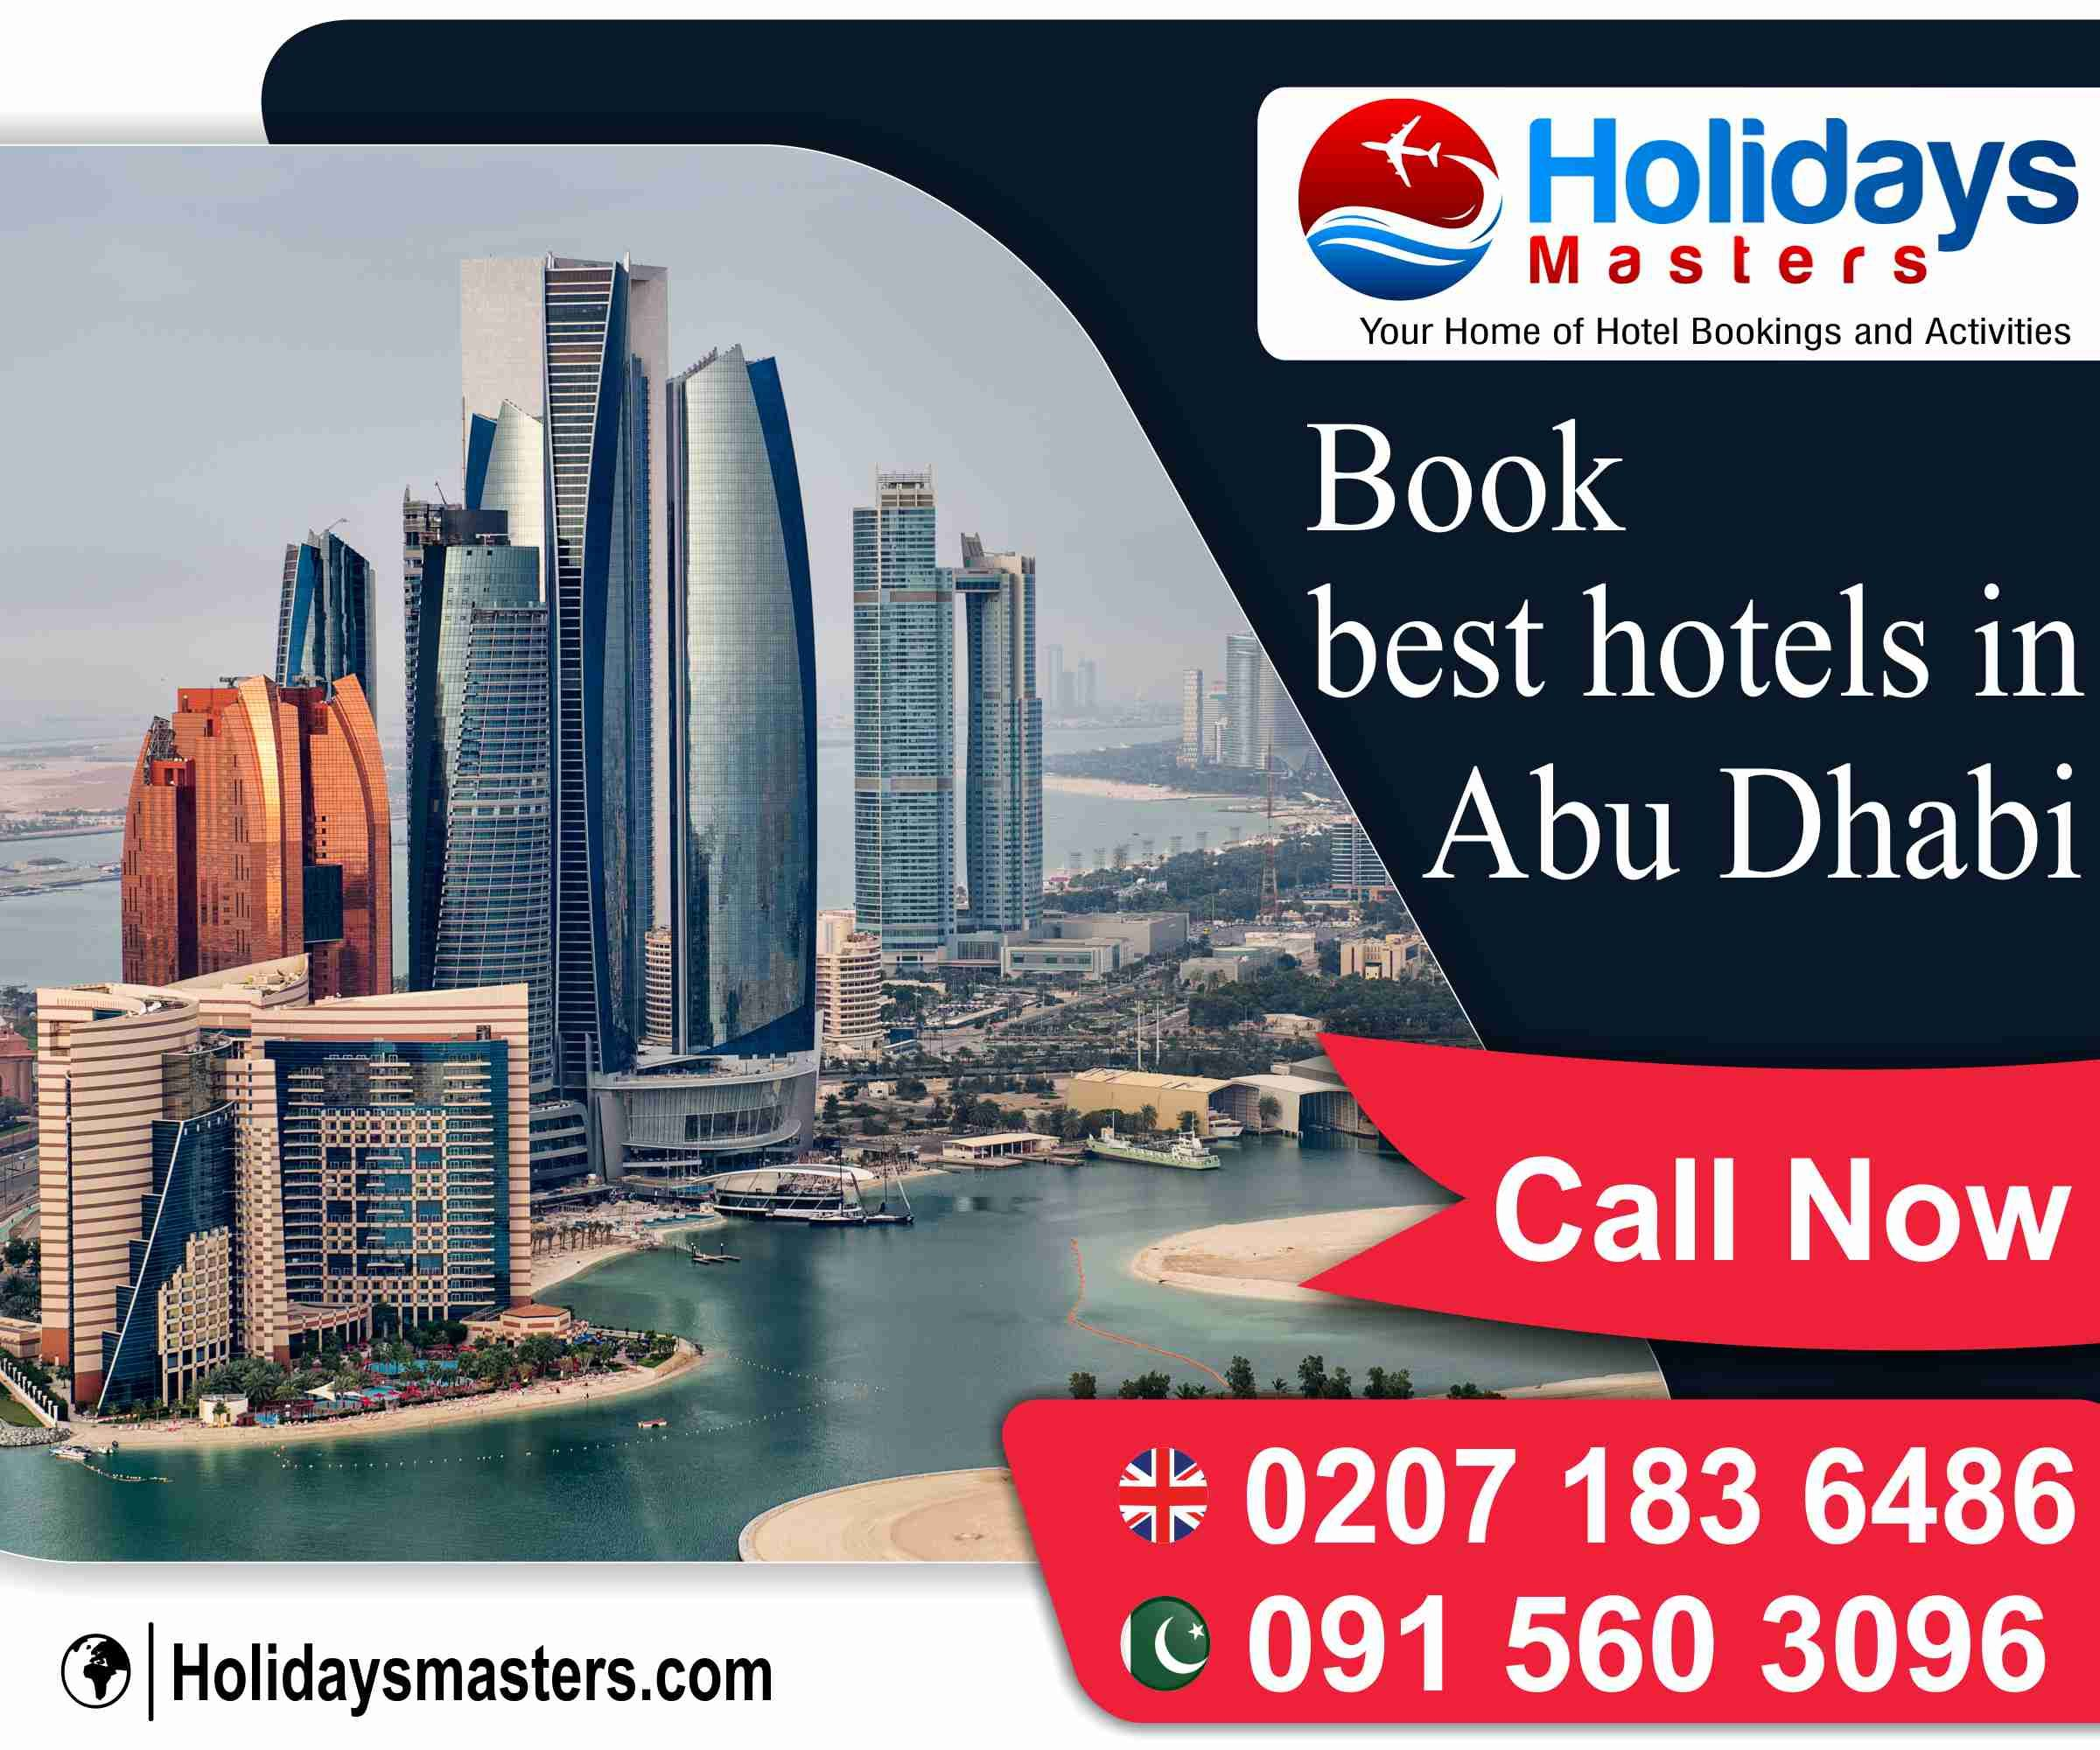 Discover Great Value Hotel Deals With Holidays Master In Hotel Abu